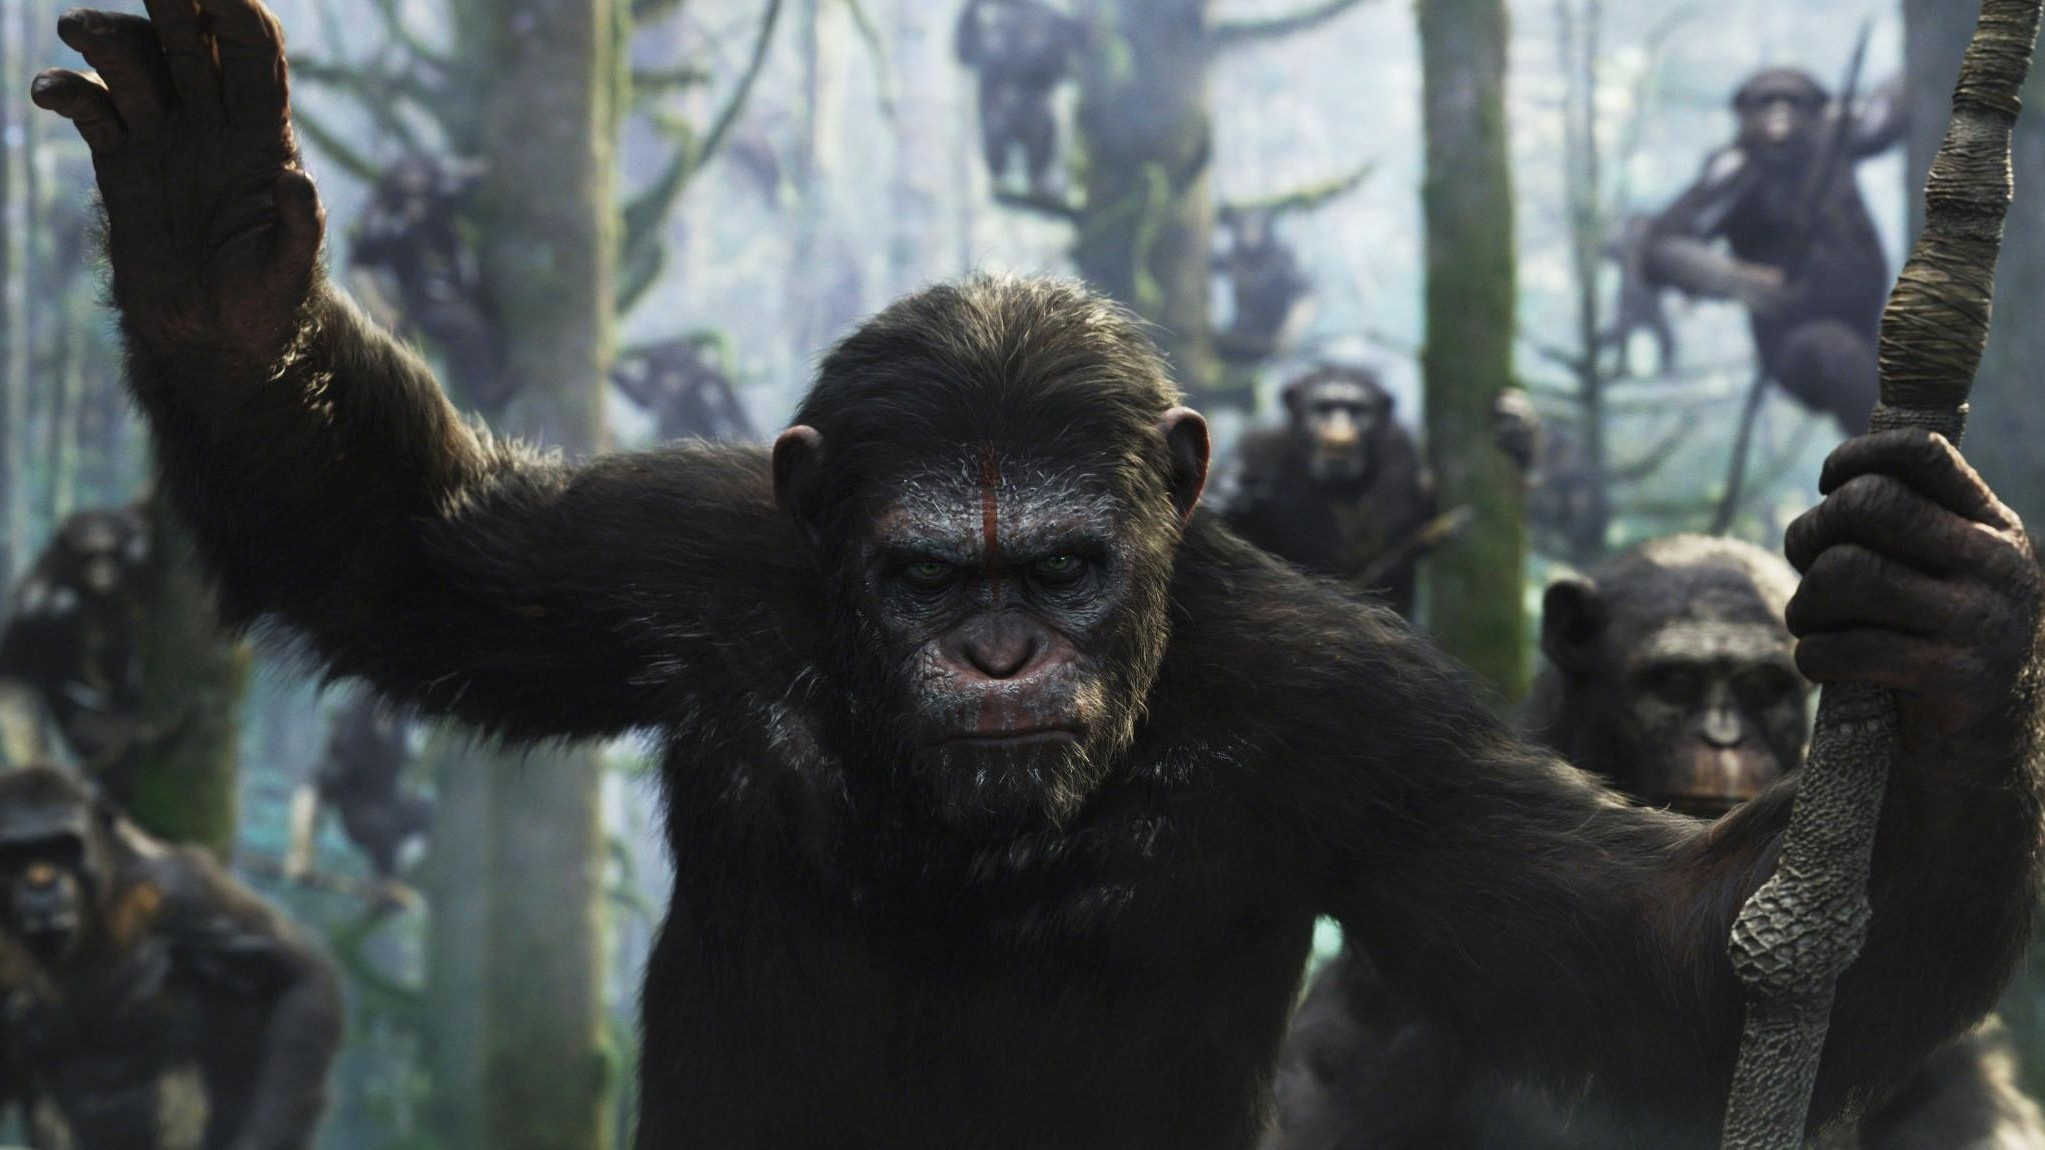 5. 'Dawn of the Planet of the Apes' (2014)